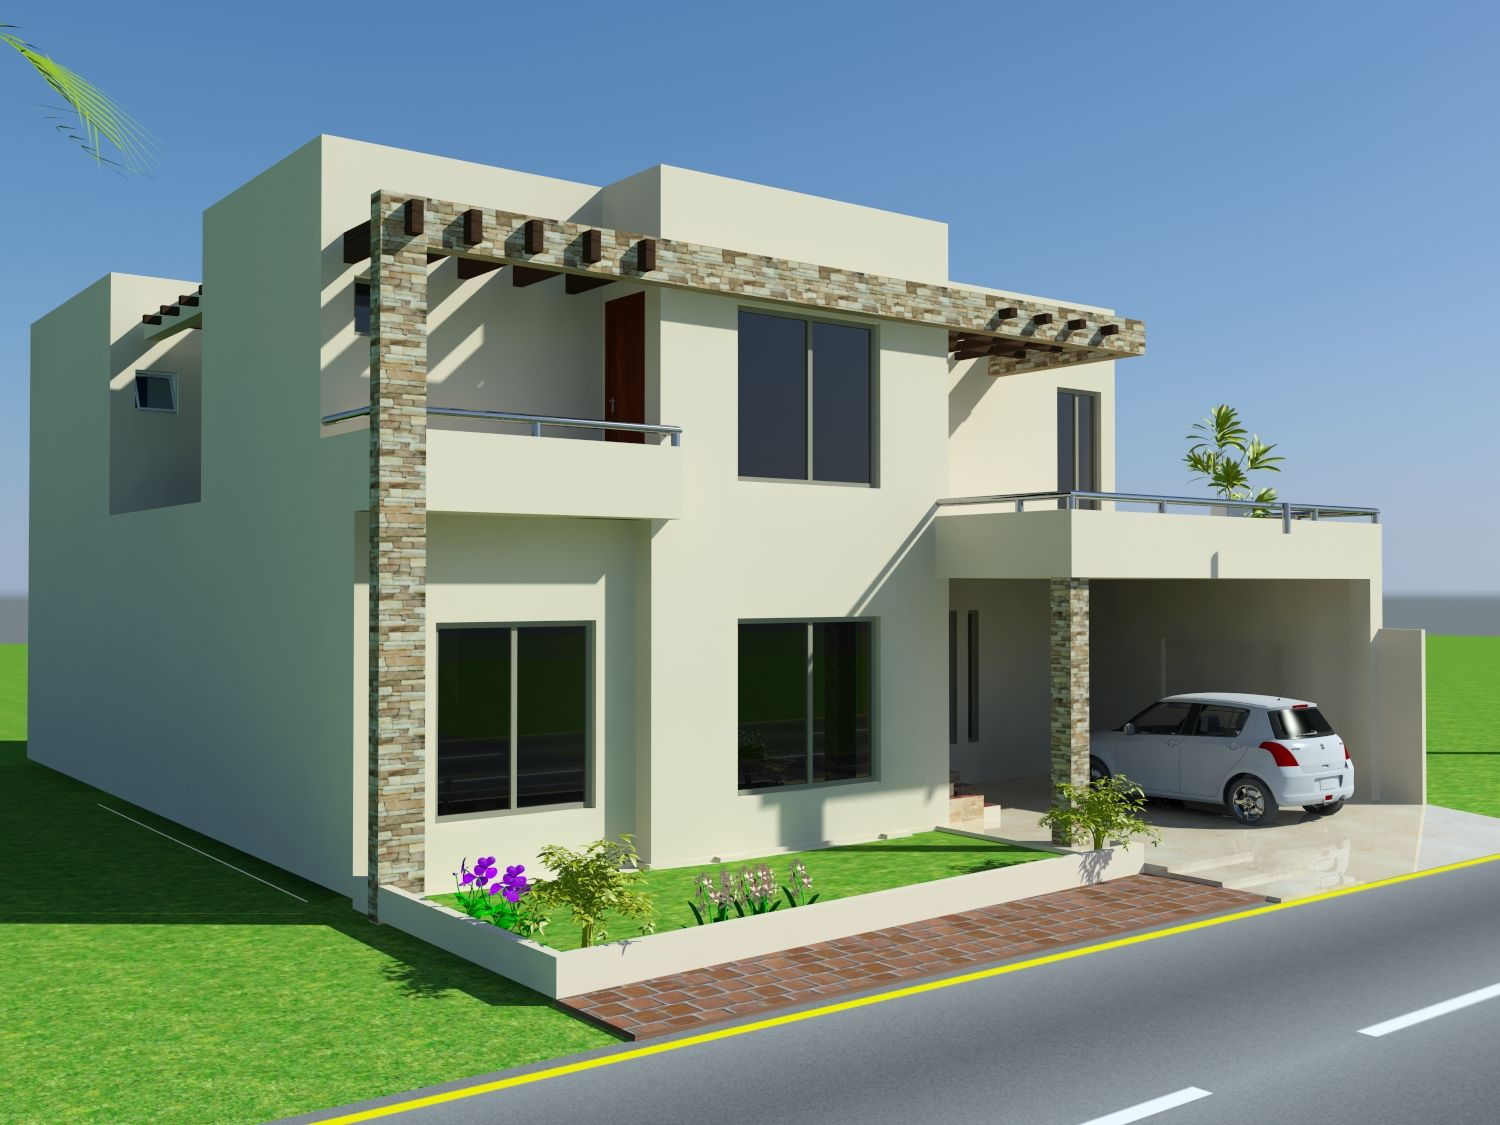 Home Design In Pakistan 10 marla house plans in pakistan graffiti graffiti 10 Marla House Design Mian Wali Pakistan